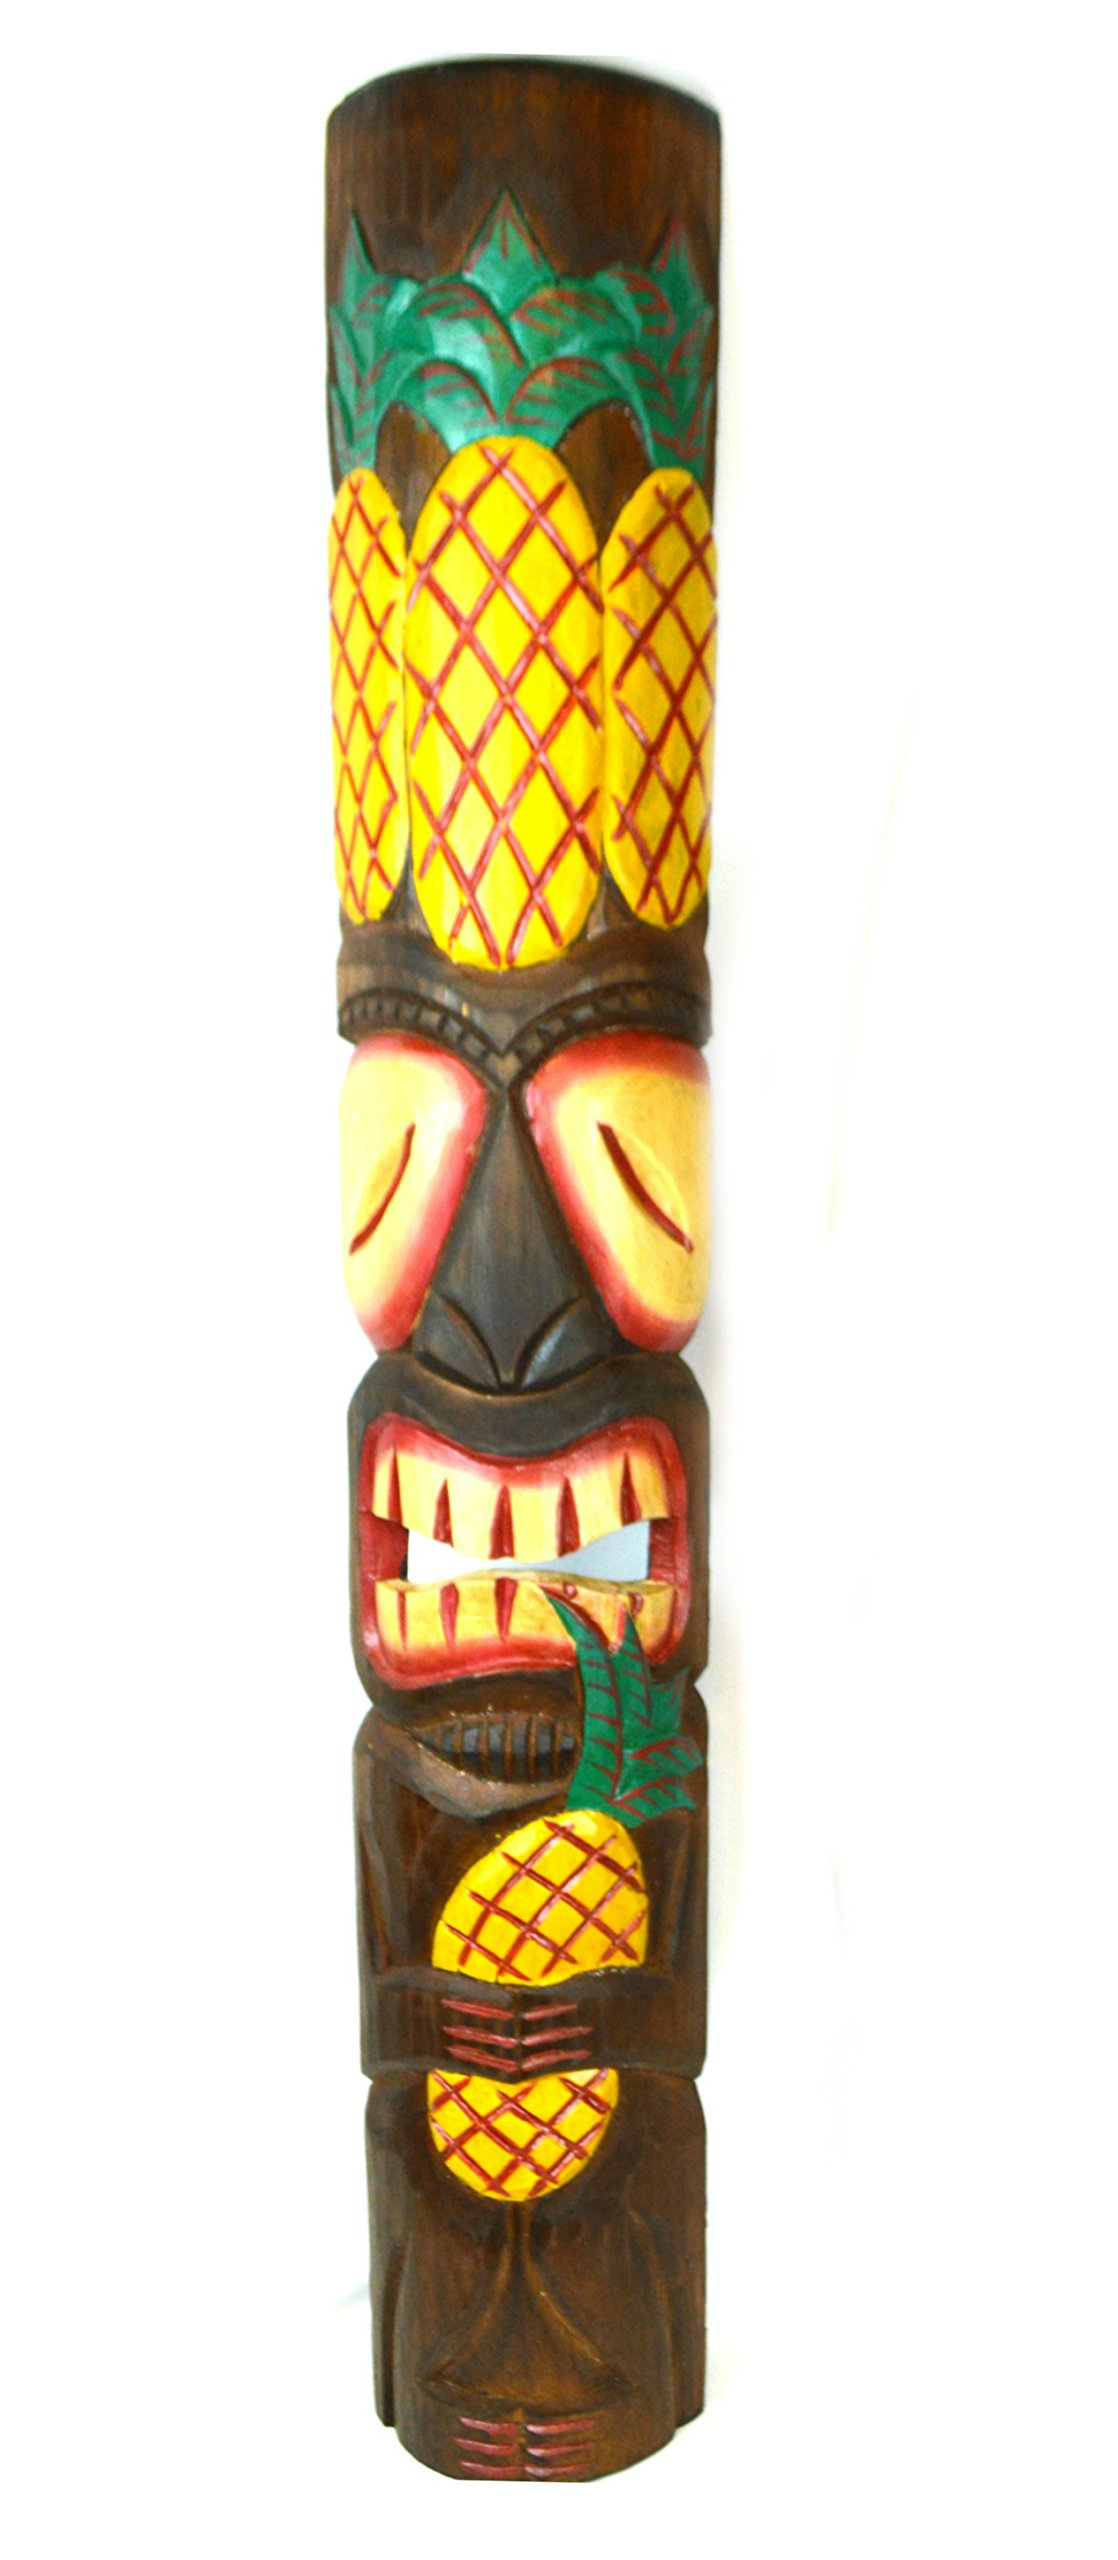 40 in Tribal Triple Pineapple Welcome Polynesian Tiki Bar Mask Hand Carved Island Tropical Decor by WorldBazzar